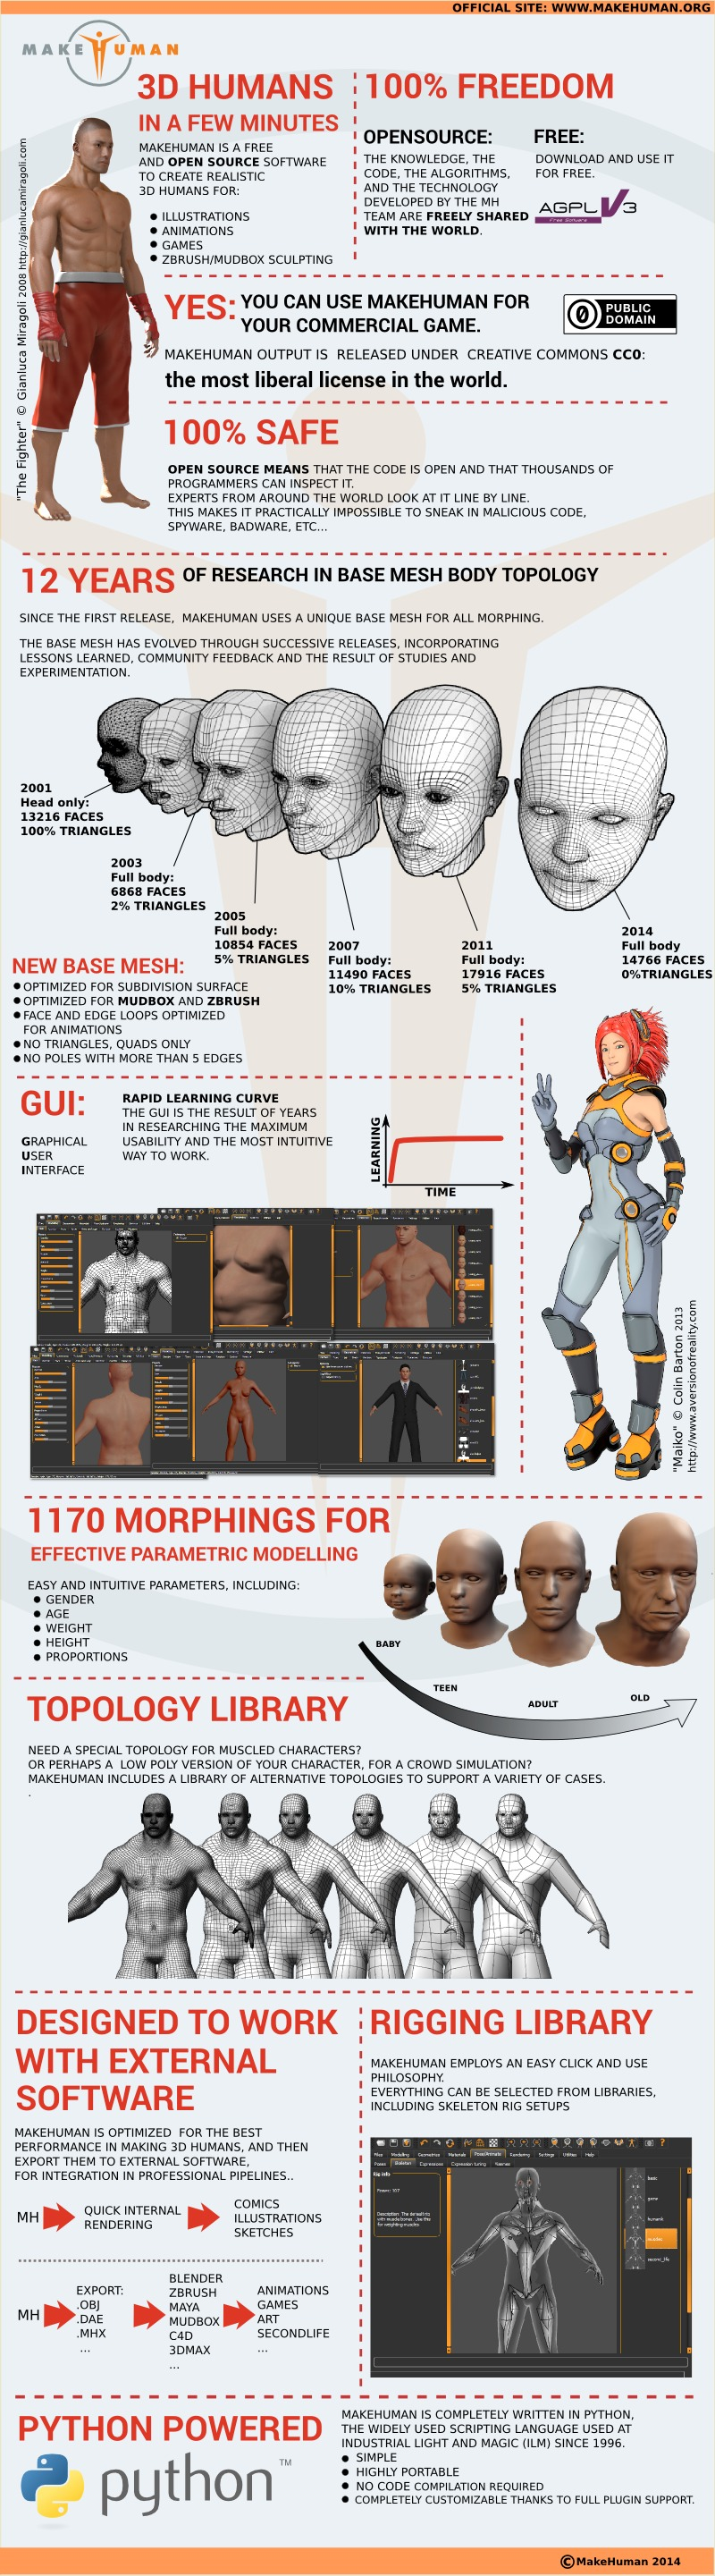 MakeHuman 1 0 0 released!! | Anatomy 3d character | Sketches